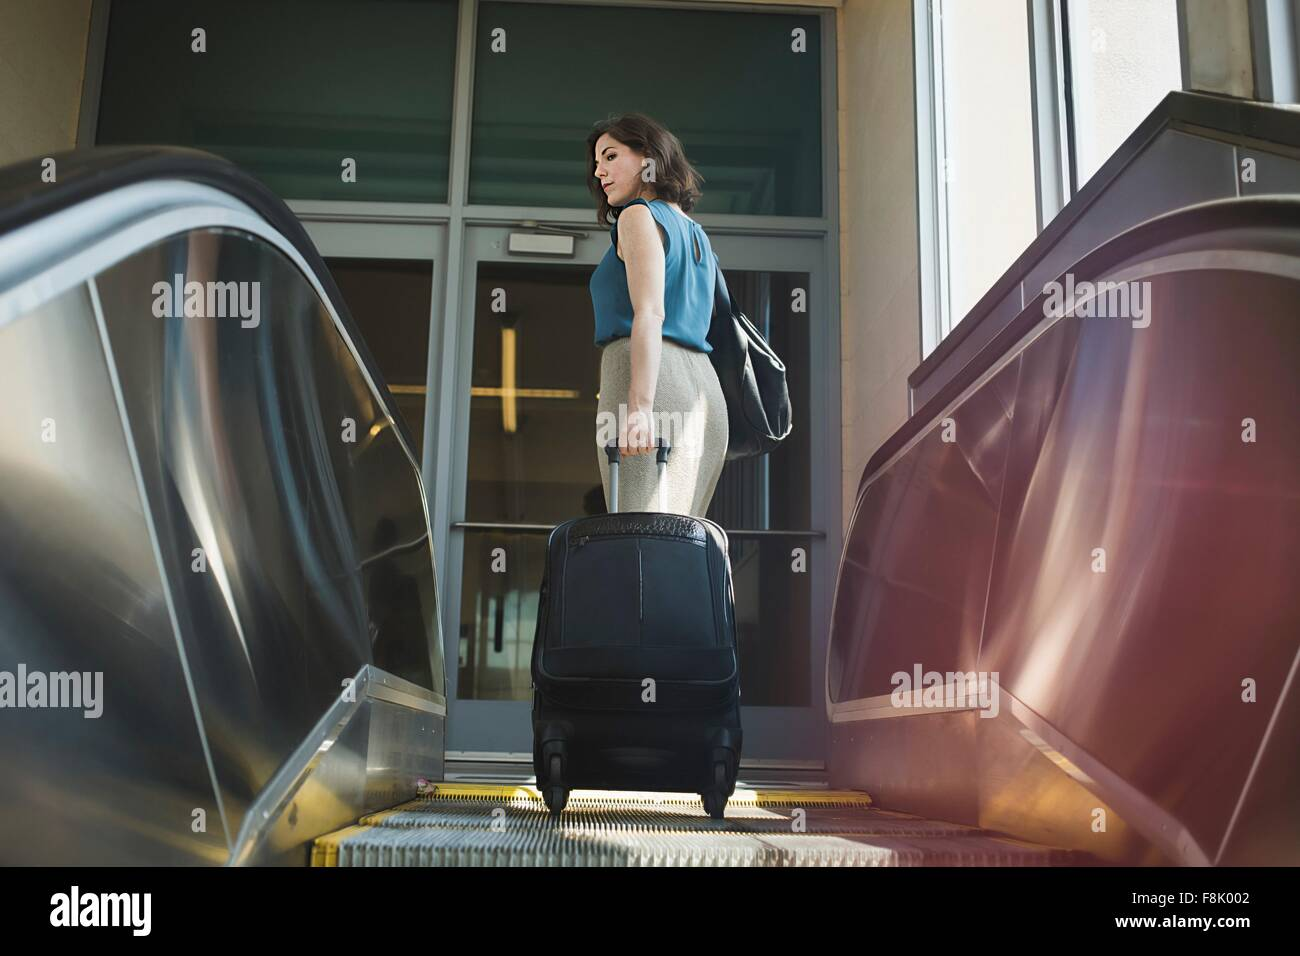 Mid adult woman using escalator, holding wheeled suitcase, rear view - Stock Image